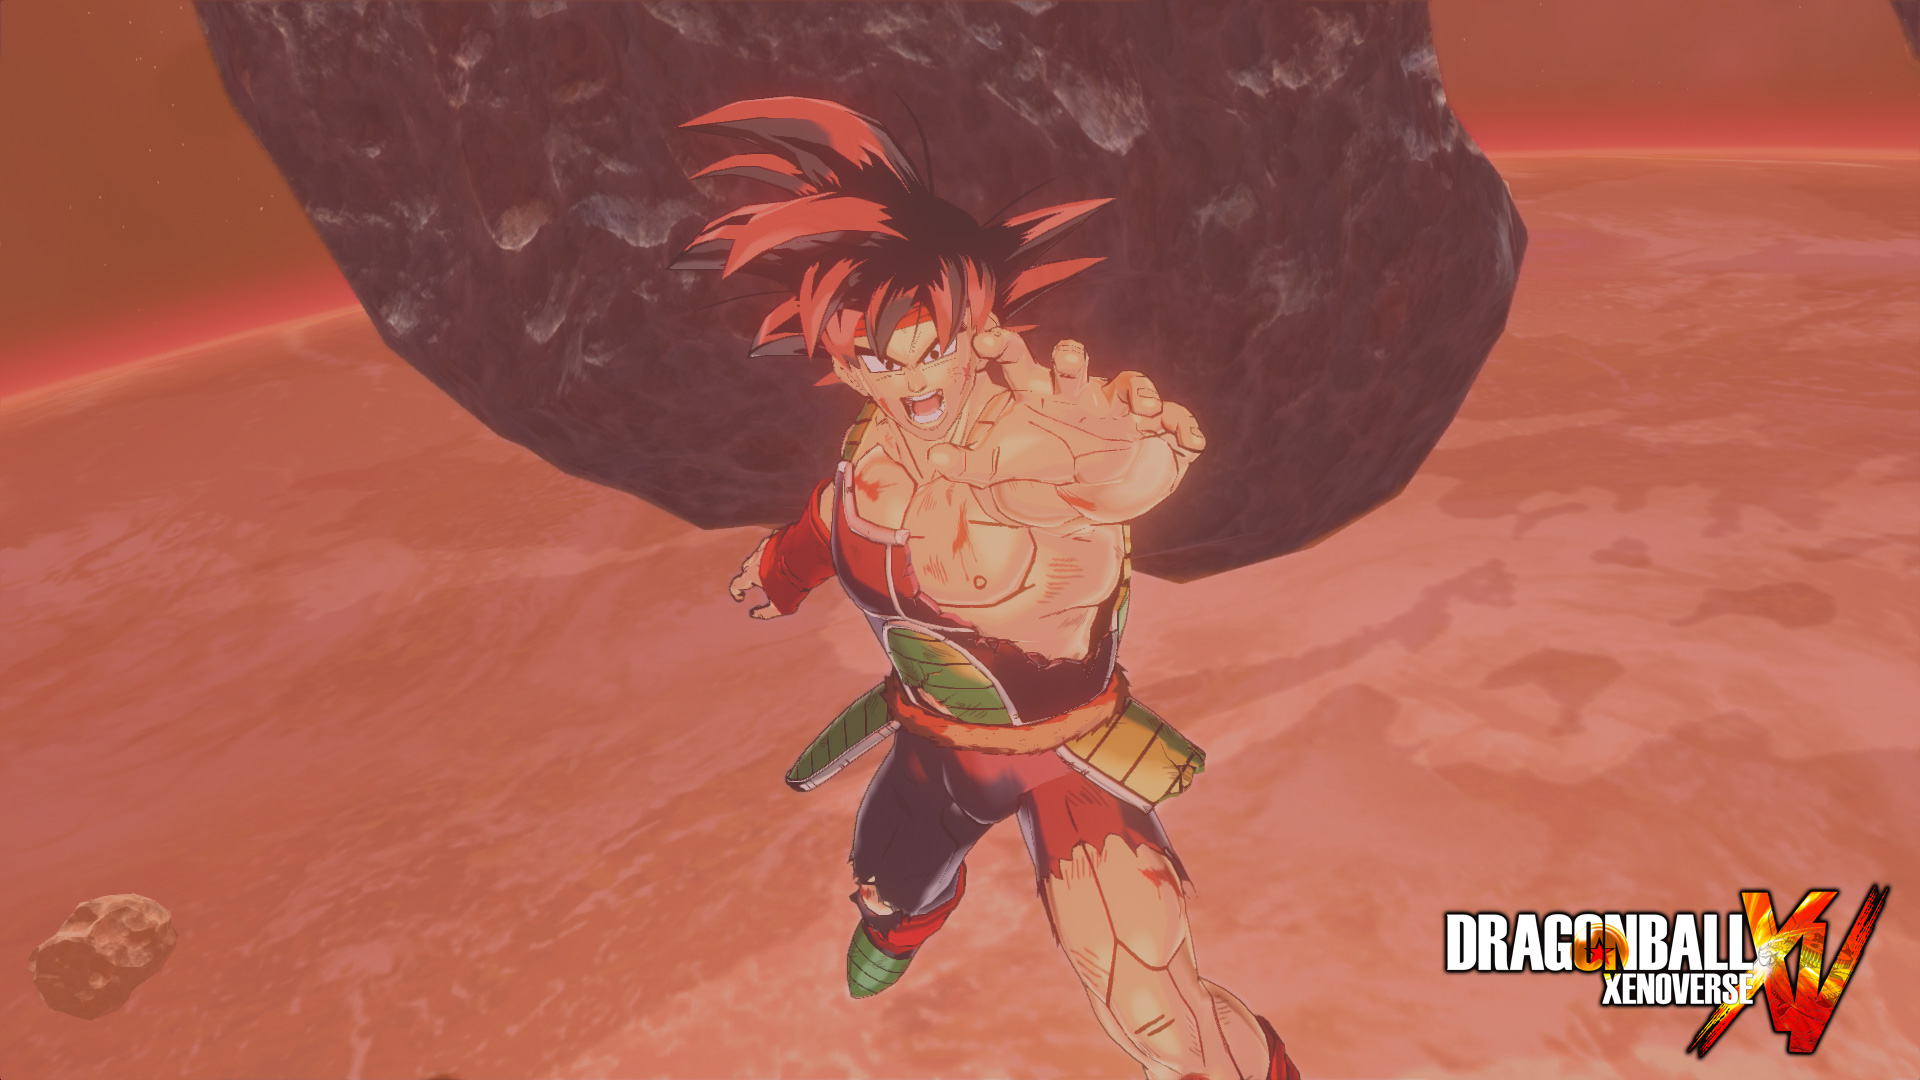 Dragon-Ball-Xenoverse-Bardock-Screenshot-2